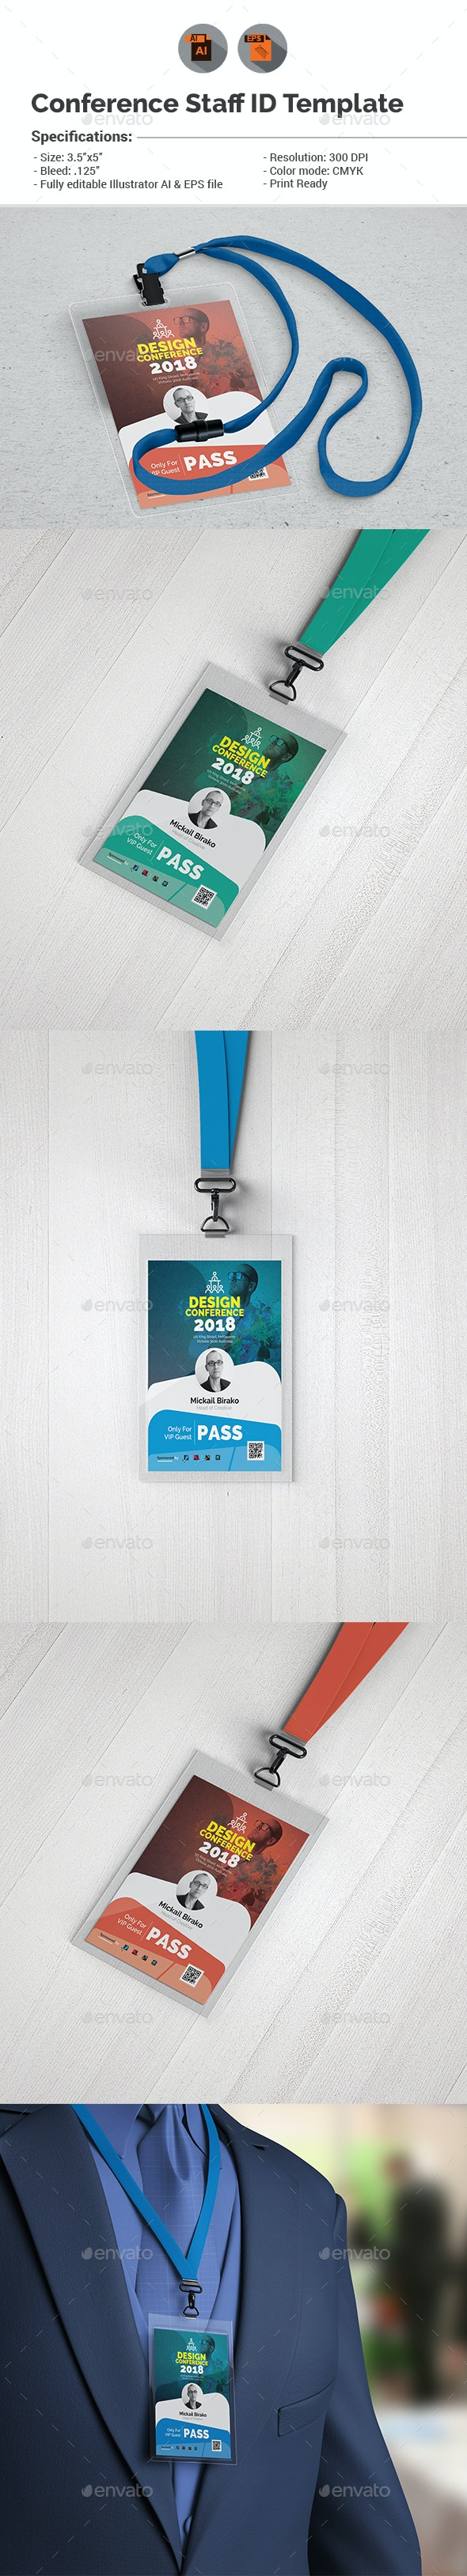 Conference VIP Pass ID Template - Miscellaneous Print Templates